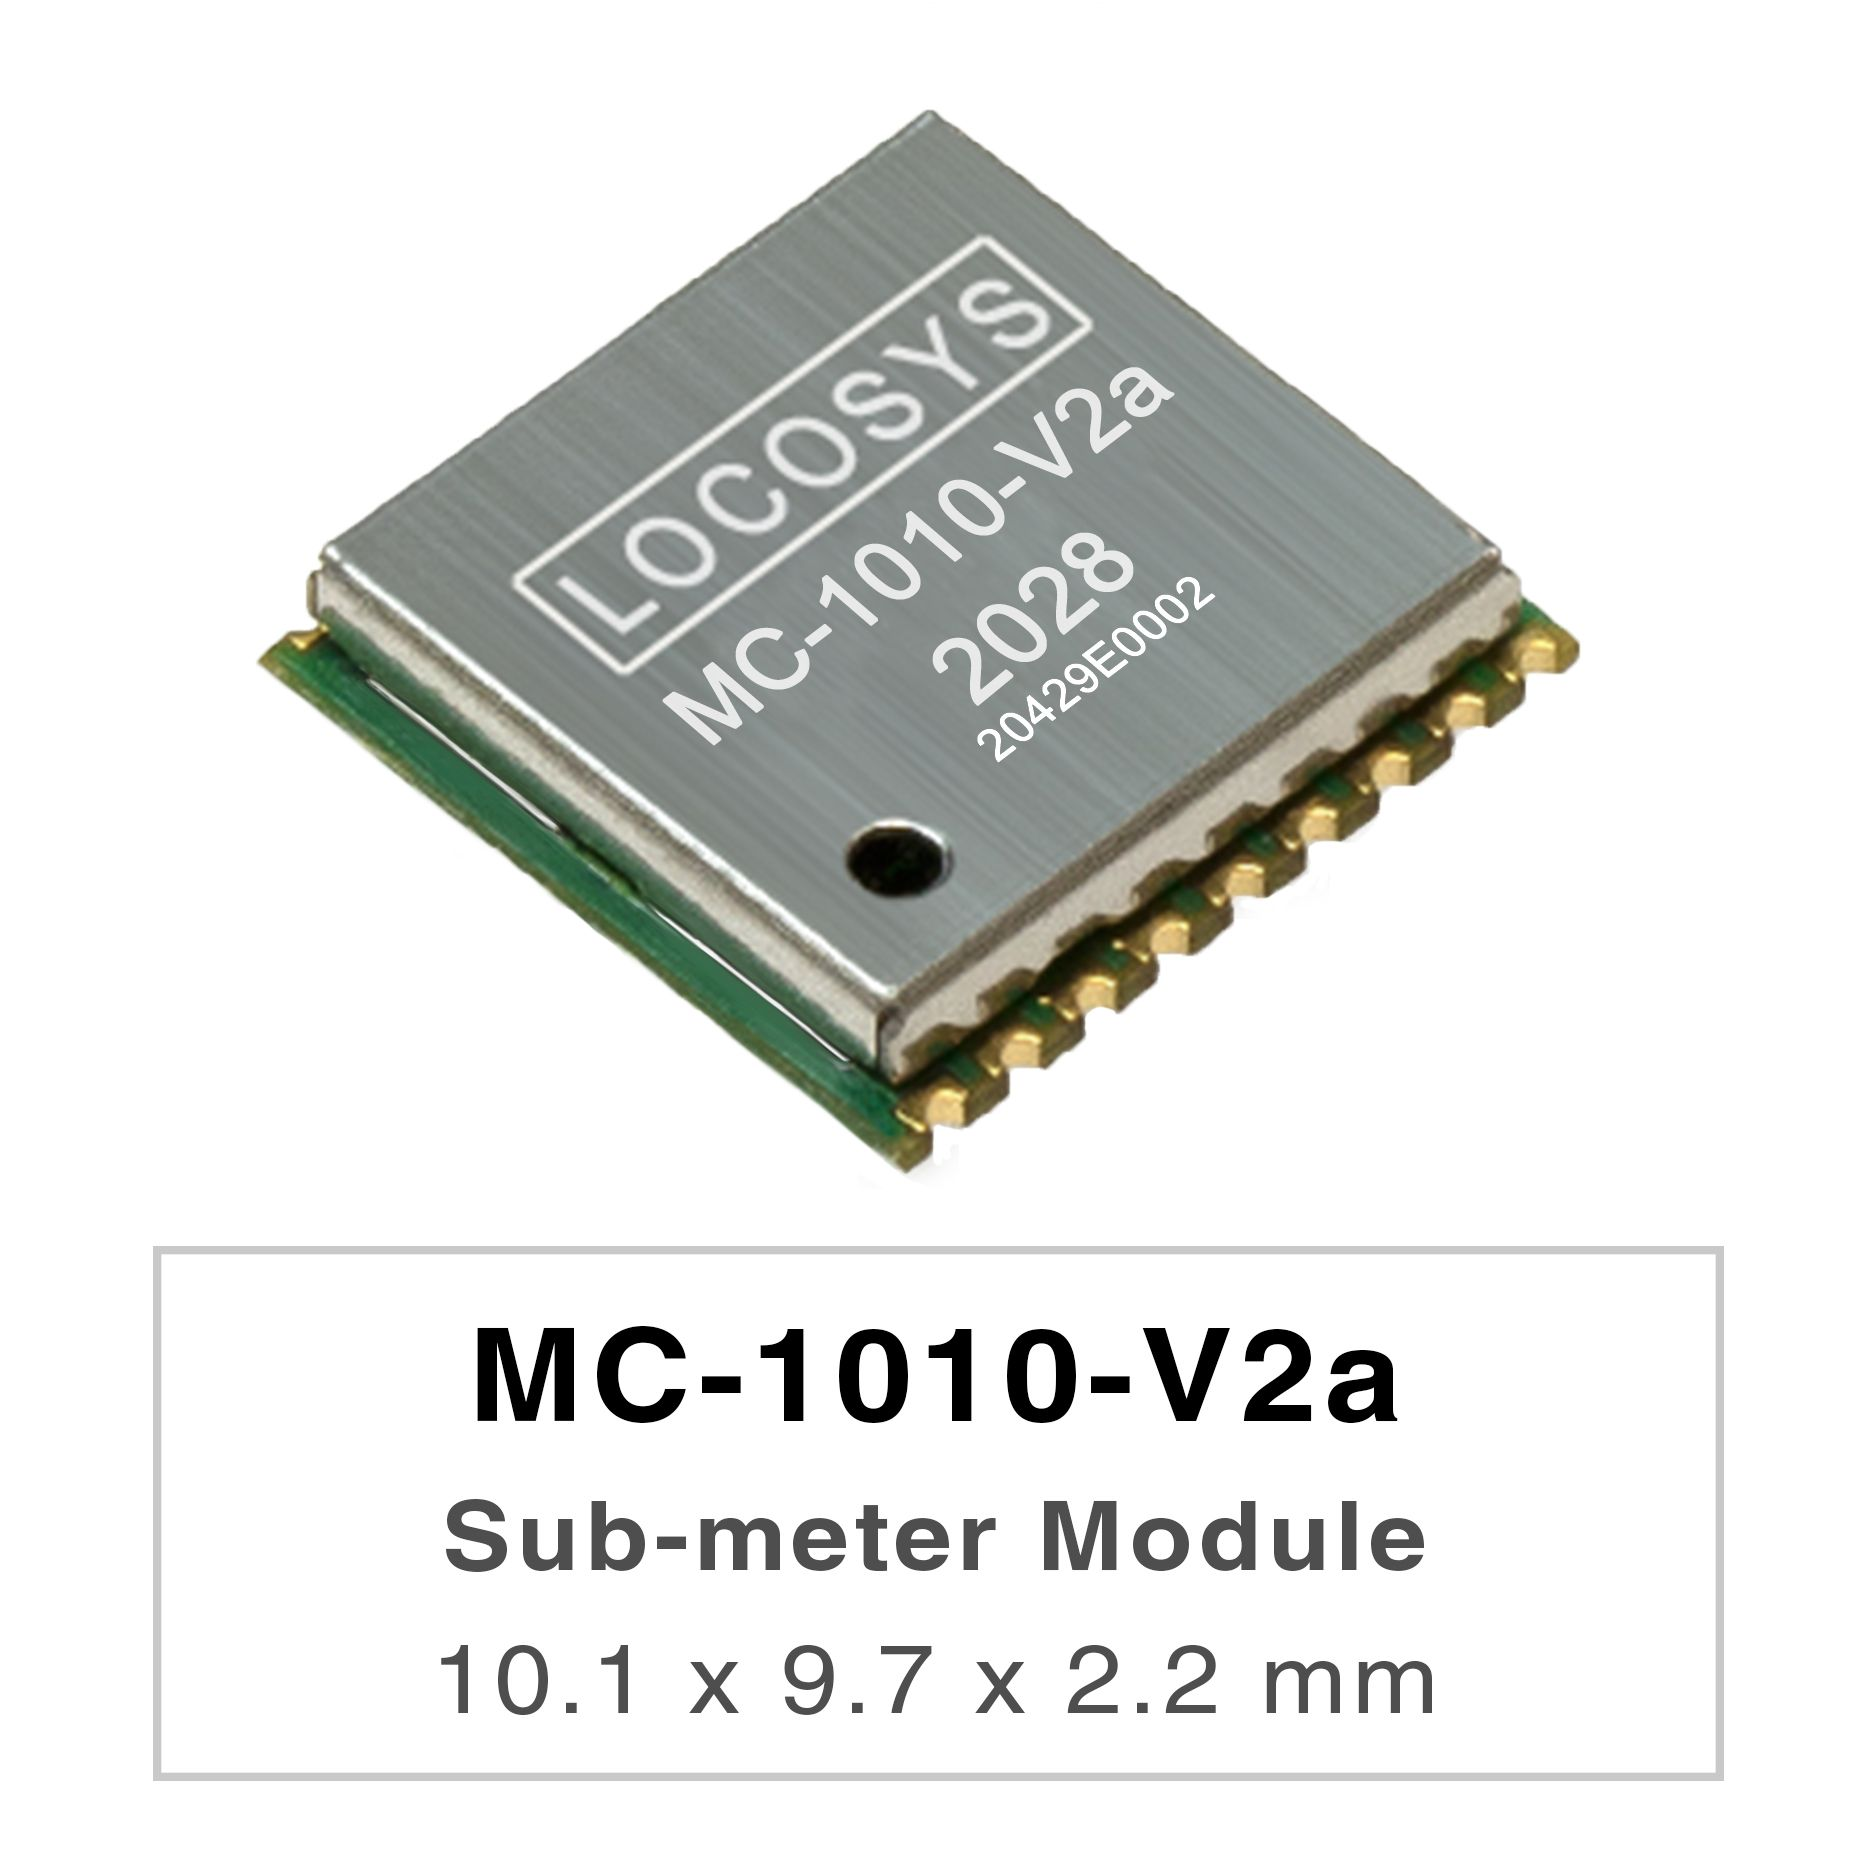 LOCOSYS MC-1010-Vxx series are high-performance dual-band GNSS positioning modules that are<br /><br />